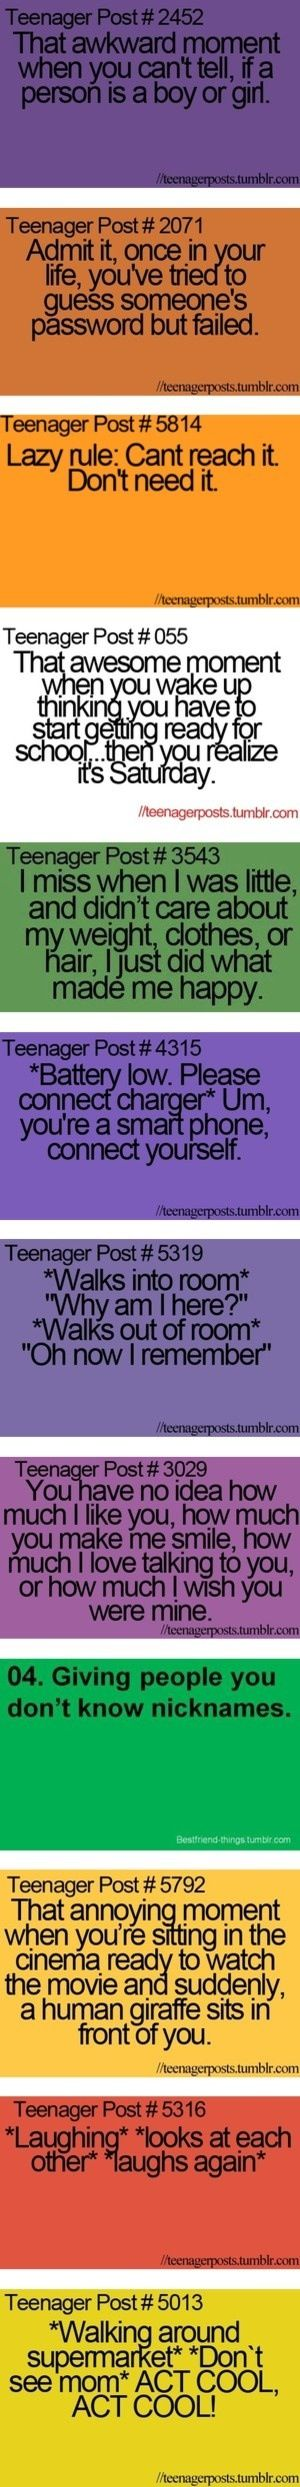 Like this is so trueXD ok now Im scared...whos been watching me!?!?! O/ I Demand an answer and a Poptart!